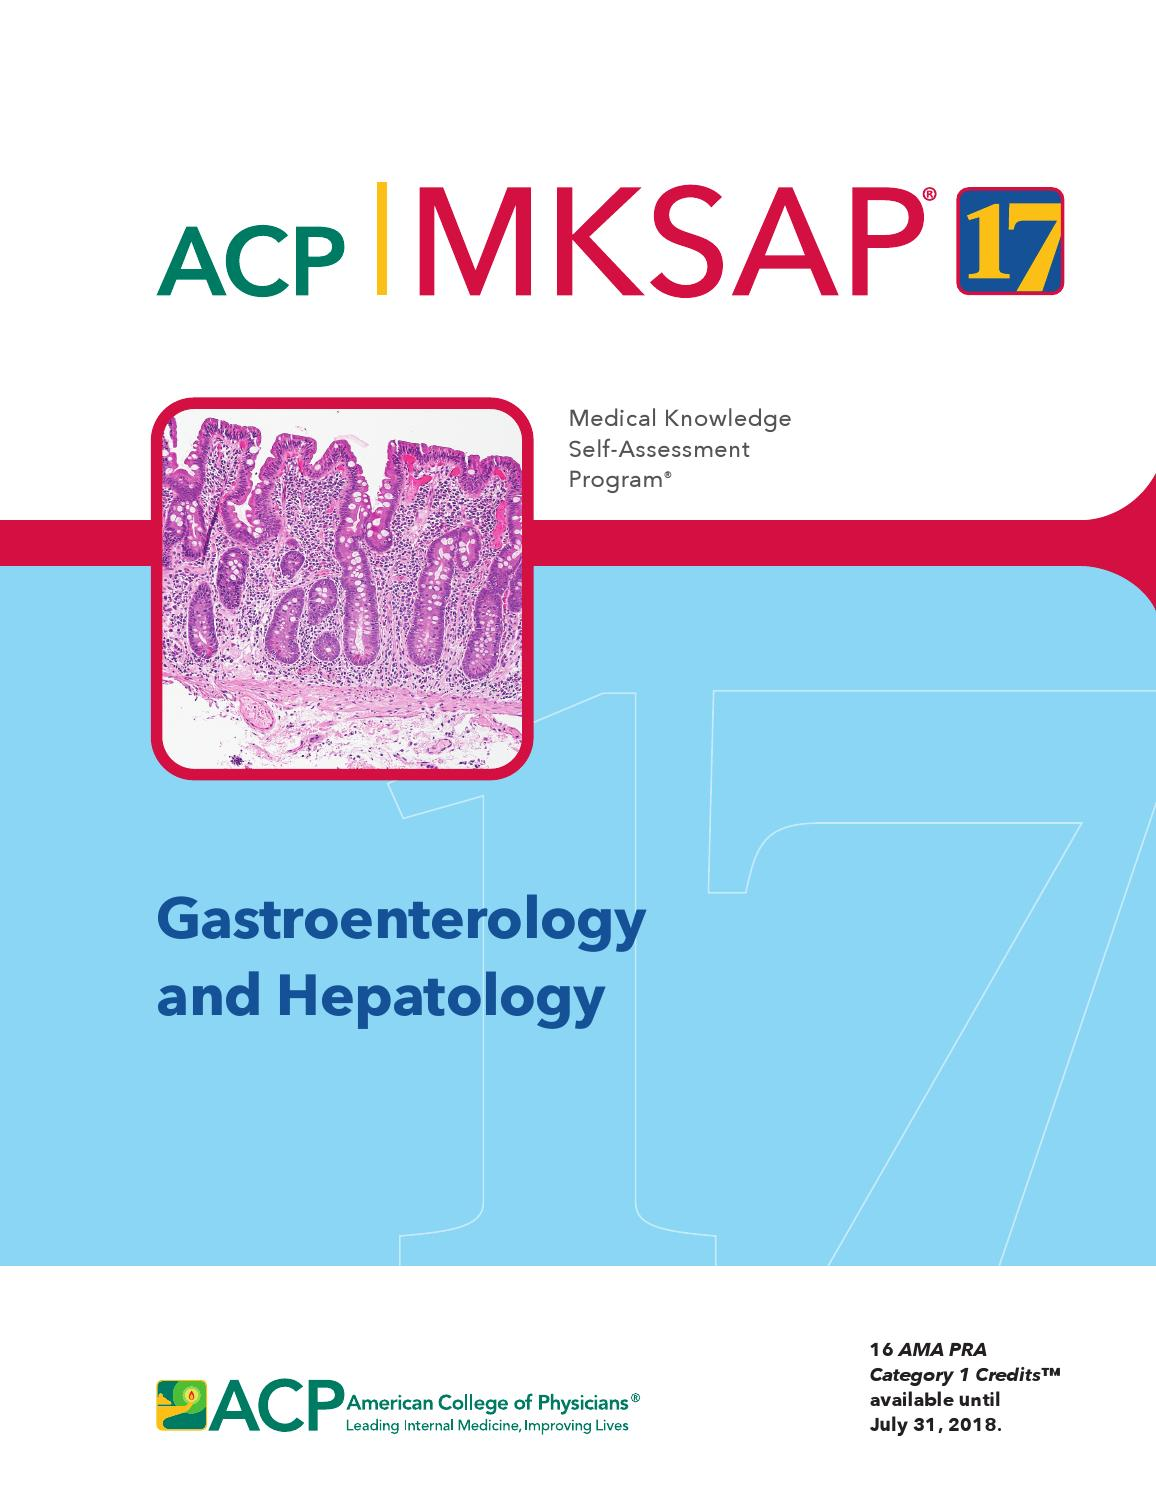 Mksap multiple choice questions ebook best deal images free ebooks mksap 17 gastroenterology and hepatology pdf fandeluxe images fandeluxe Image collections